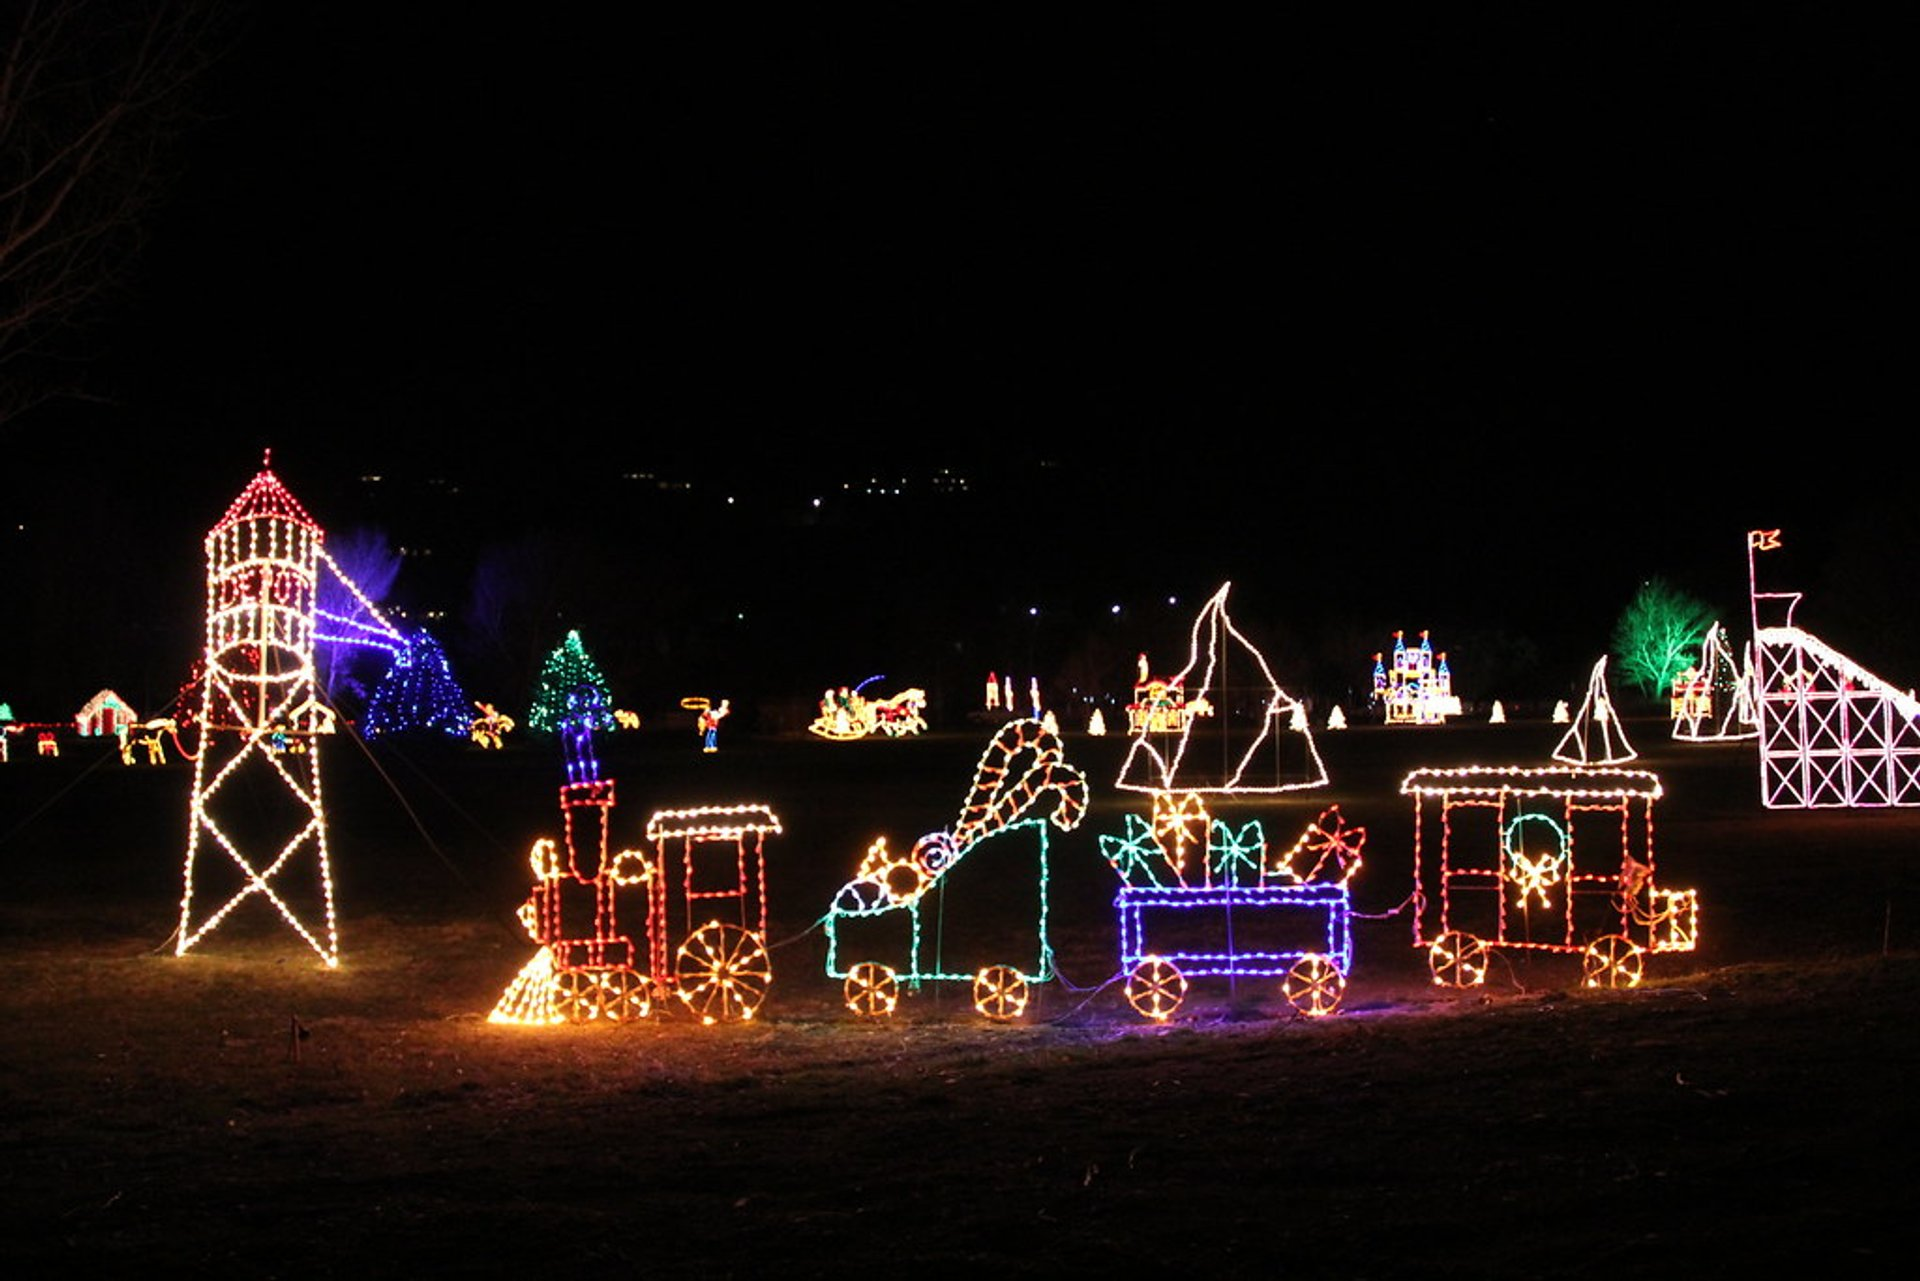 Best Christmas Light Displays Utah 2020 Christmas Lights 2020 2021 in Utah   Dates